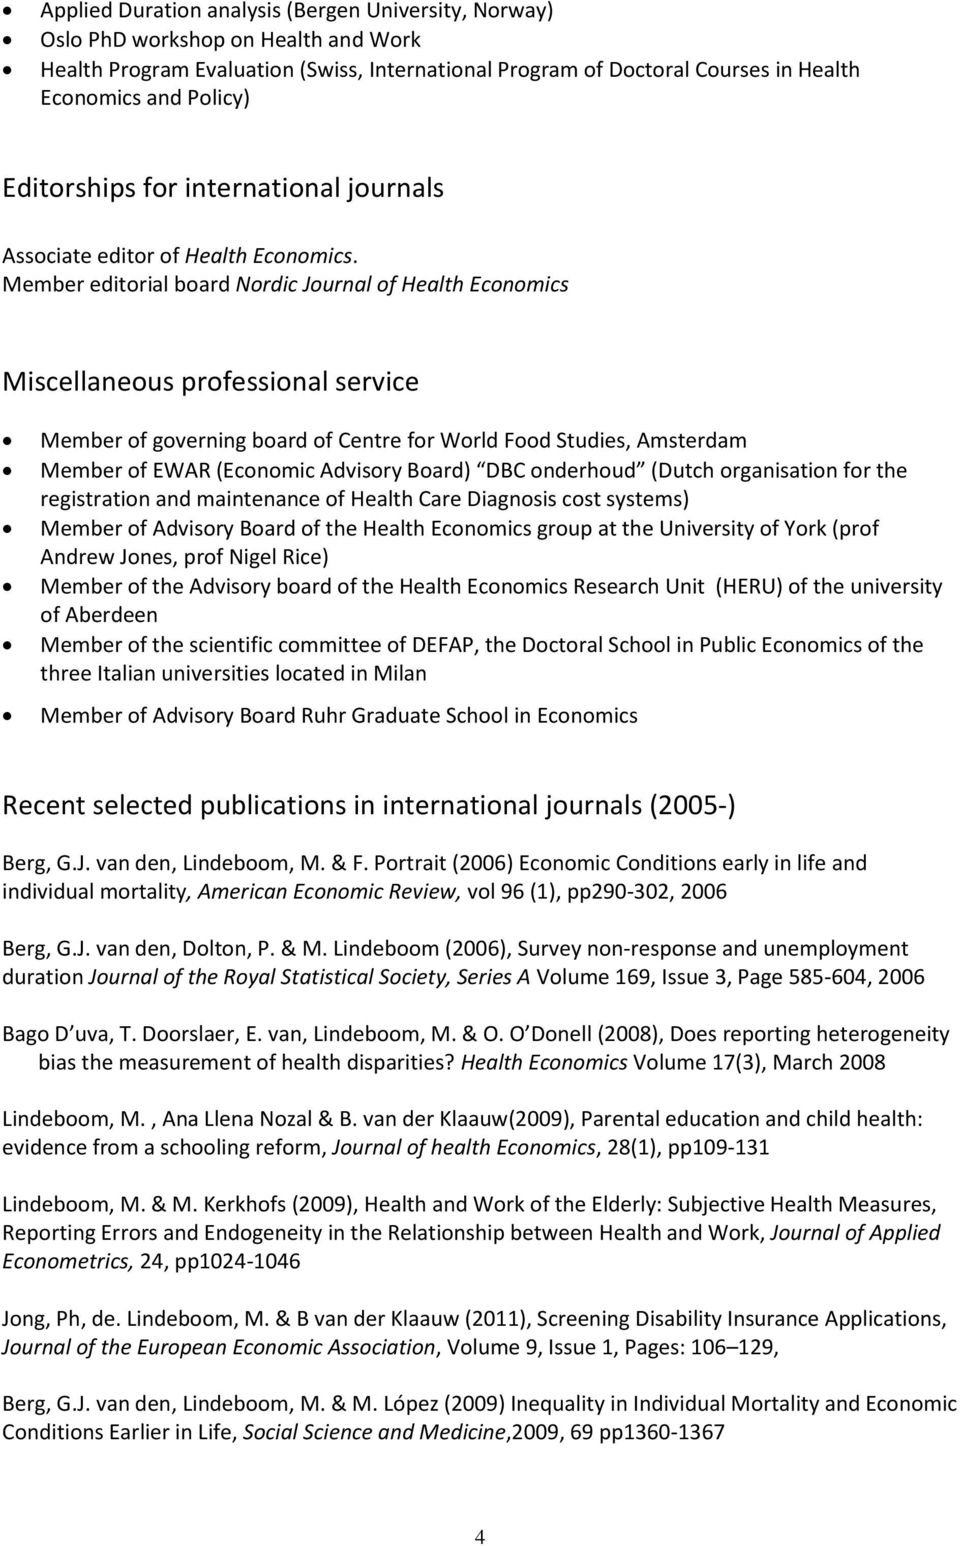 Member editorial board Nordic Journal of Health Economics Miscellaneous professional service Member of governing board of Centre for World Food Studies, Amsterdam Member of EWAR (Economic Advisory